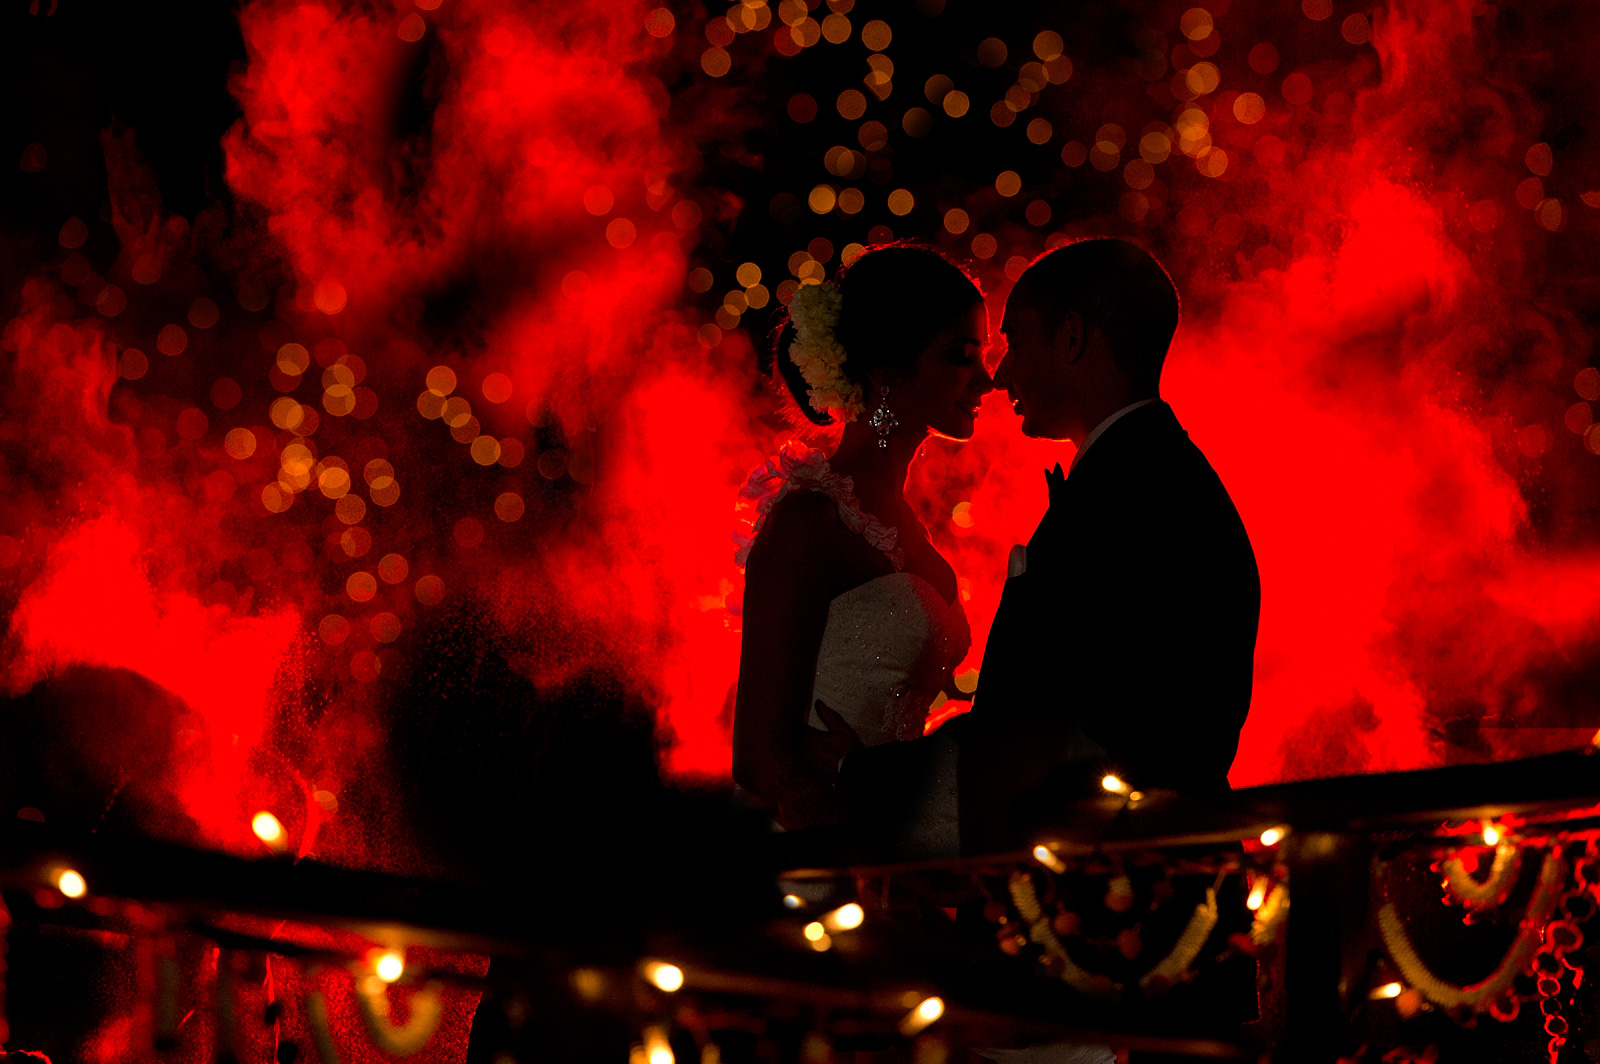 Arty night time photo of bride and groom